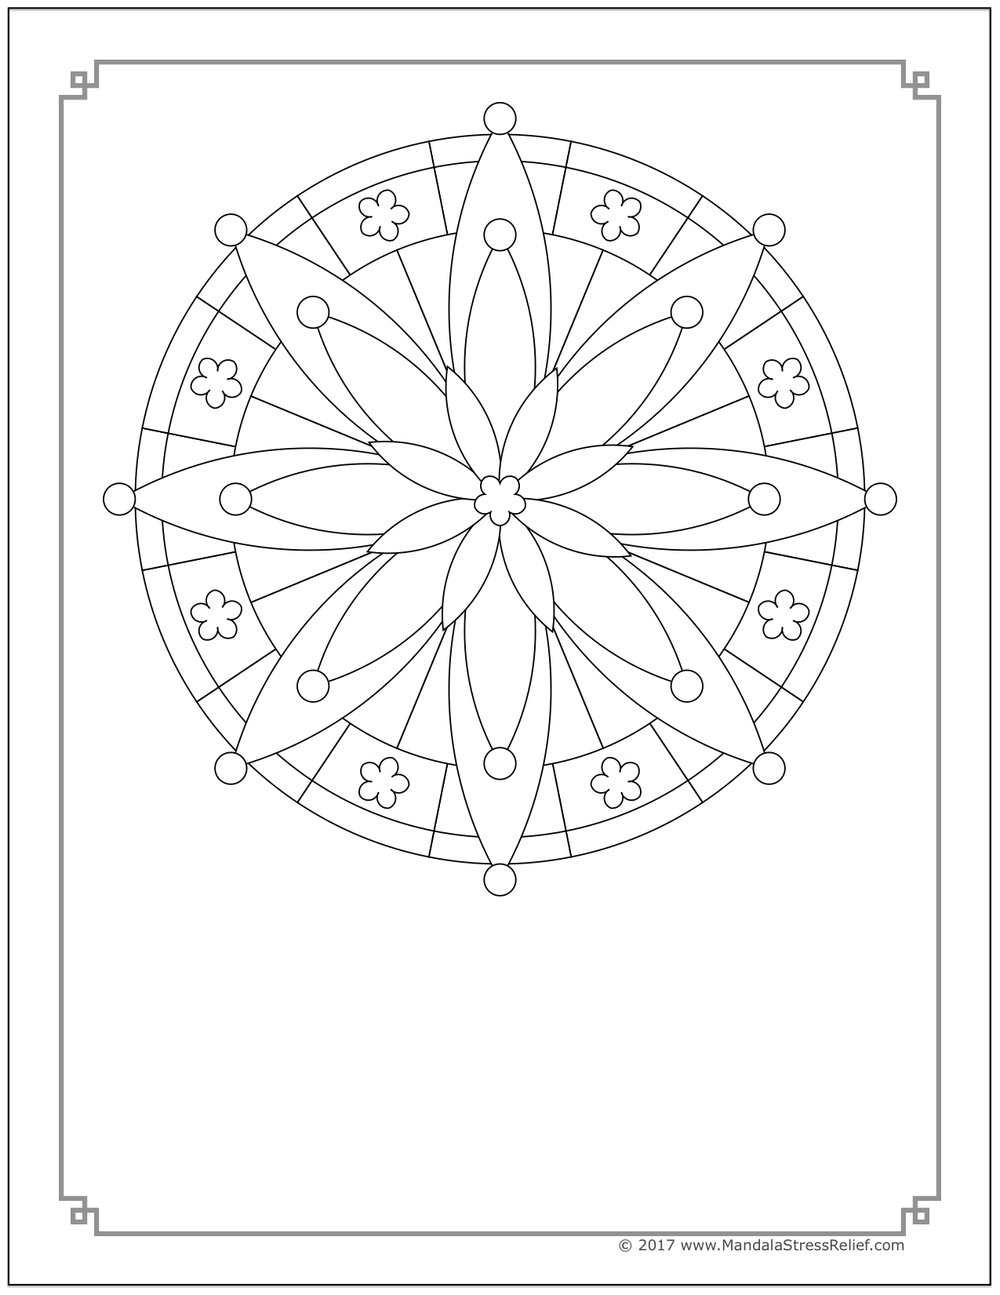 CREATE YOUR OWN MINI-POSTER: Download this page , colour in the mandala and add your own favourite quote at the bottom.